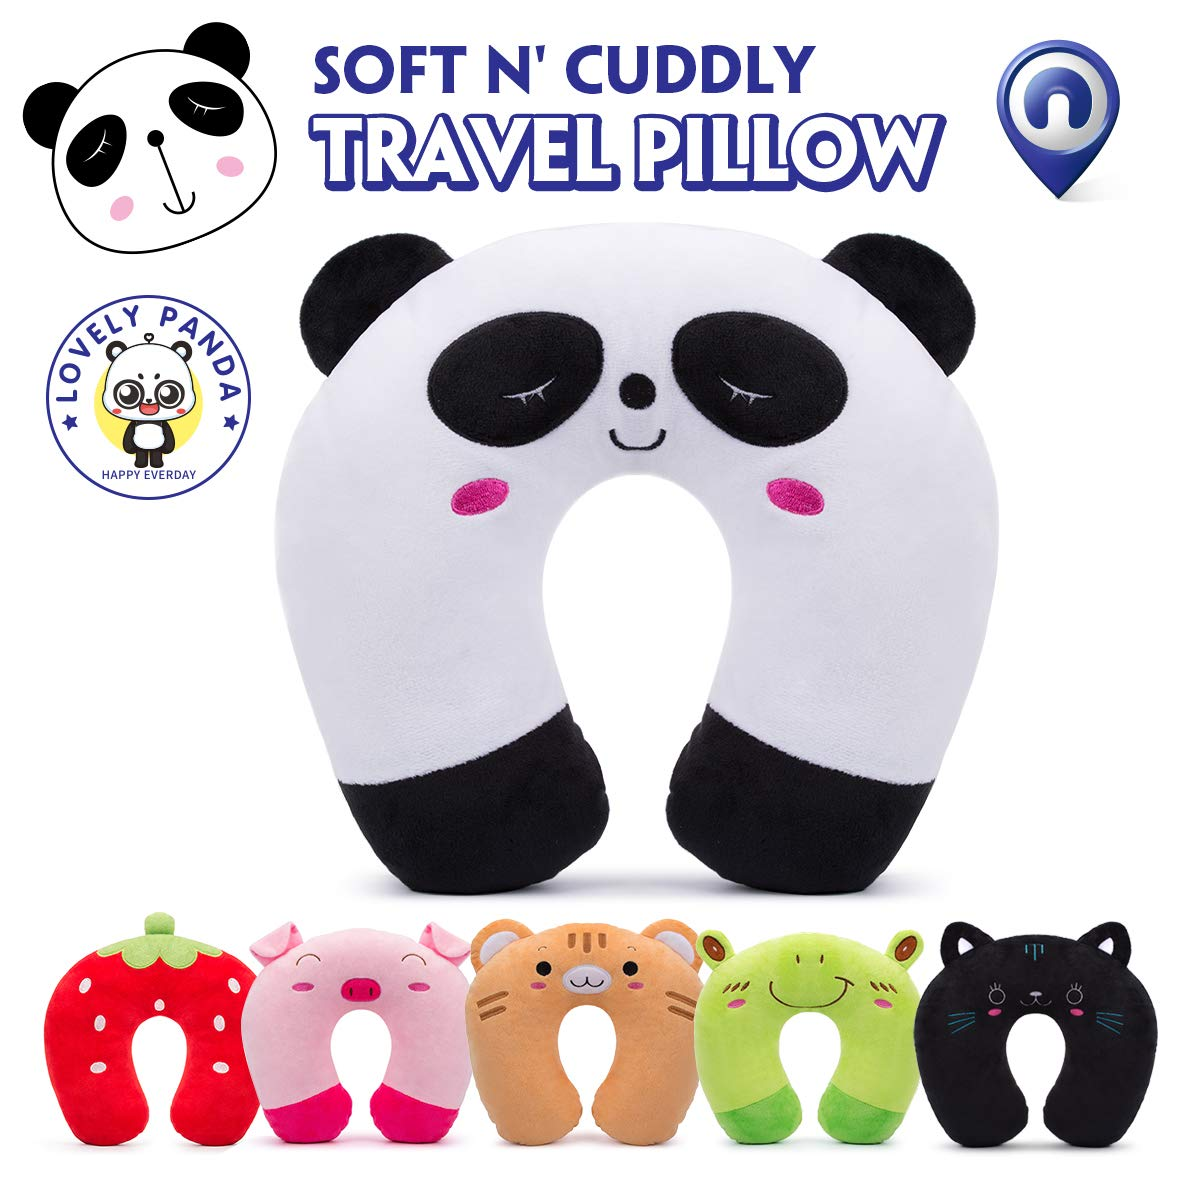 Travel Pillow for Kids Toddlers - Soft Neck Head Chin Support Pillow, Cute Animal, Comfortable in Any Sitting Position for Airplane, Car, Train, Machine Washable, attach luggage, Children gift (panda)